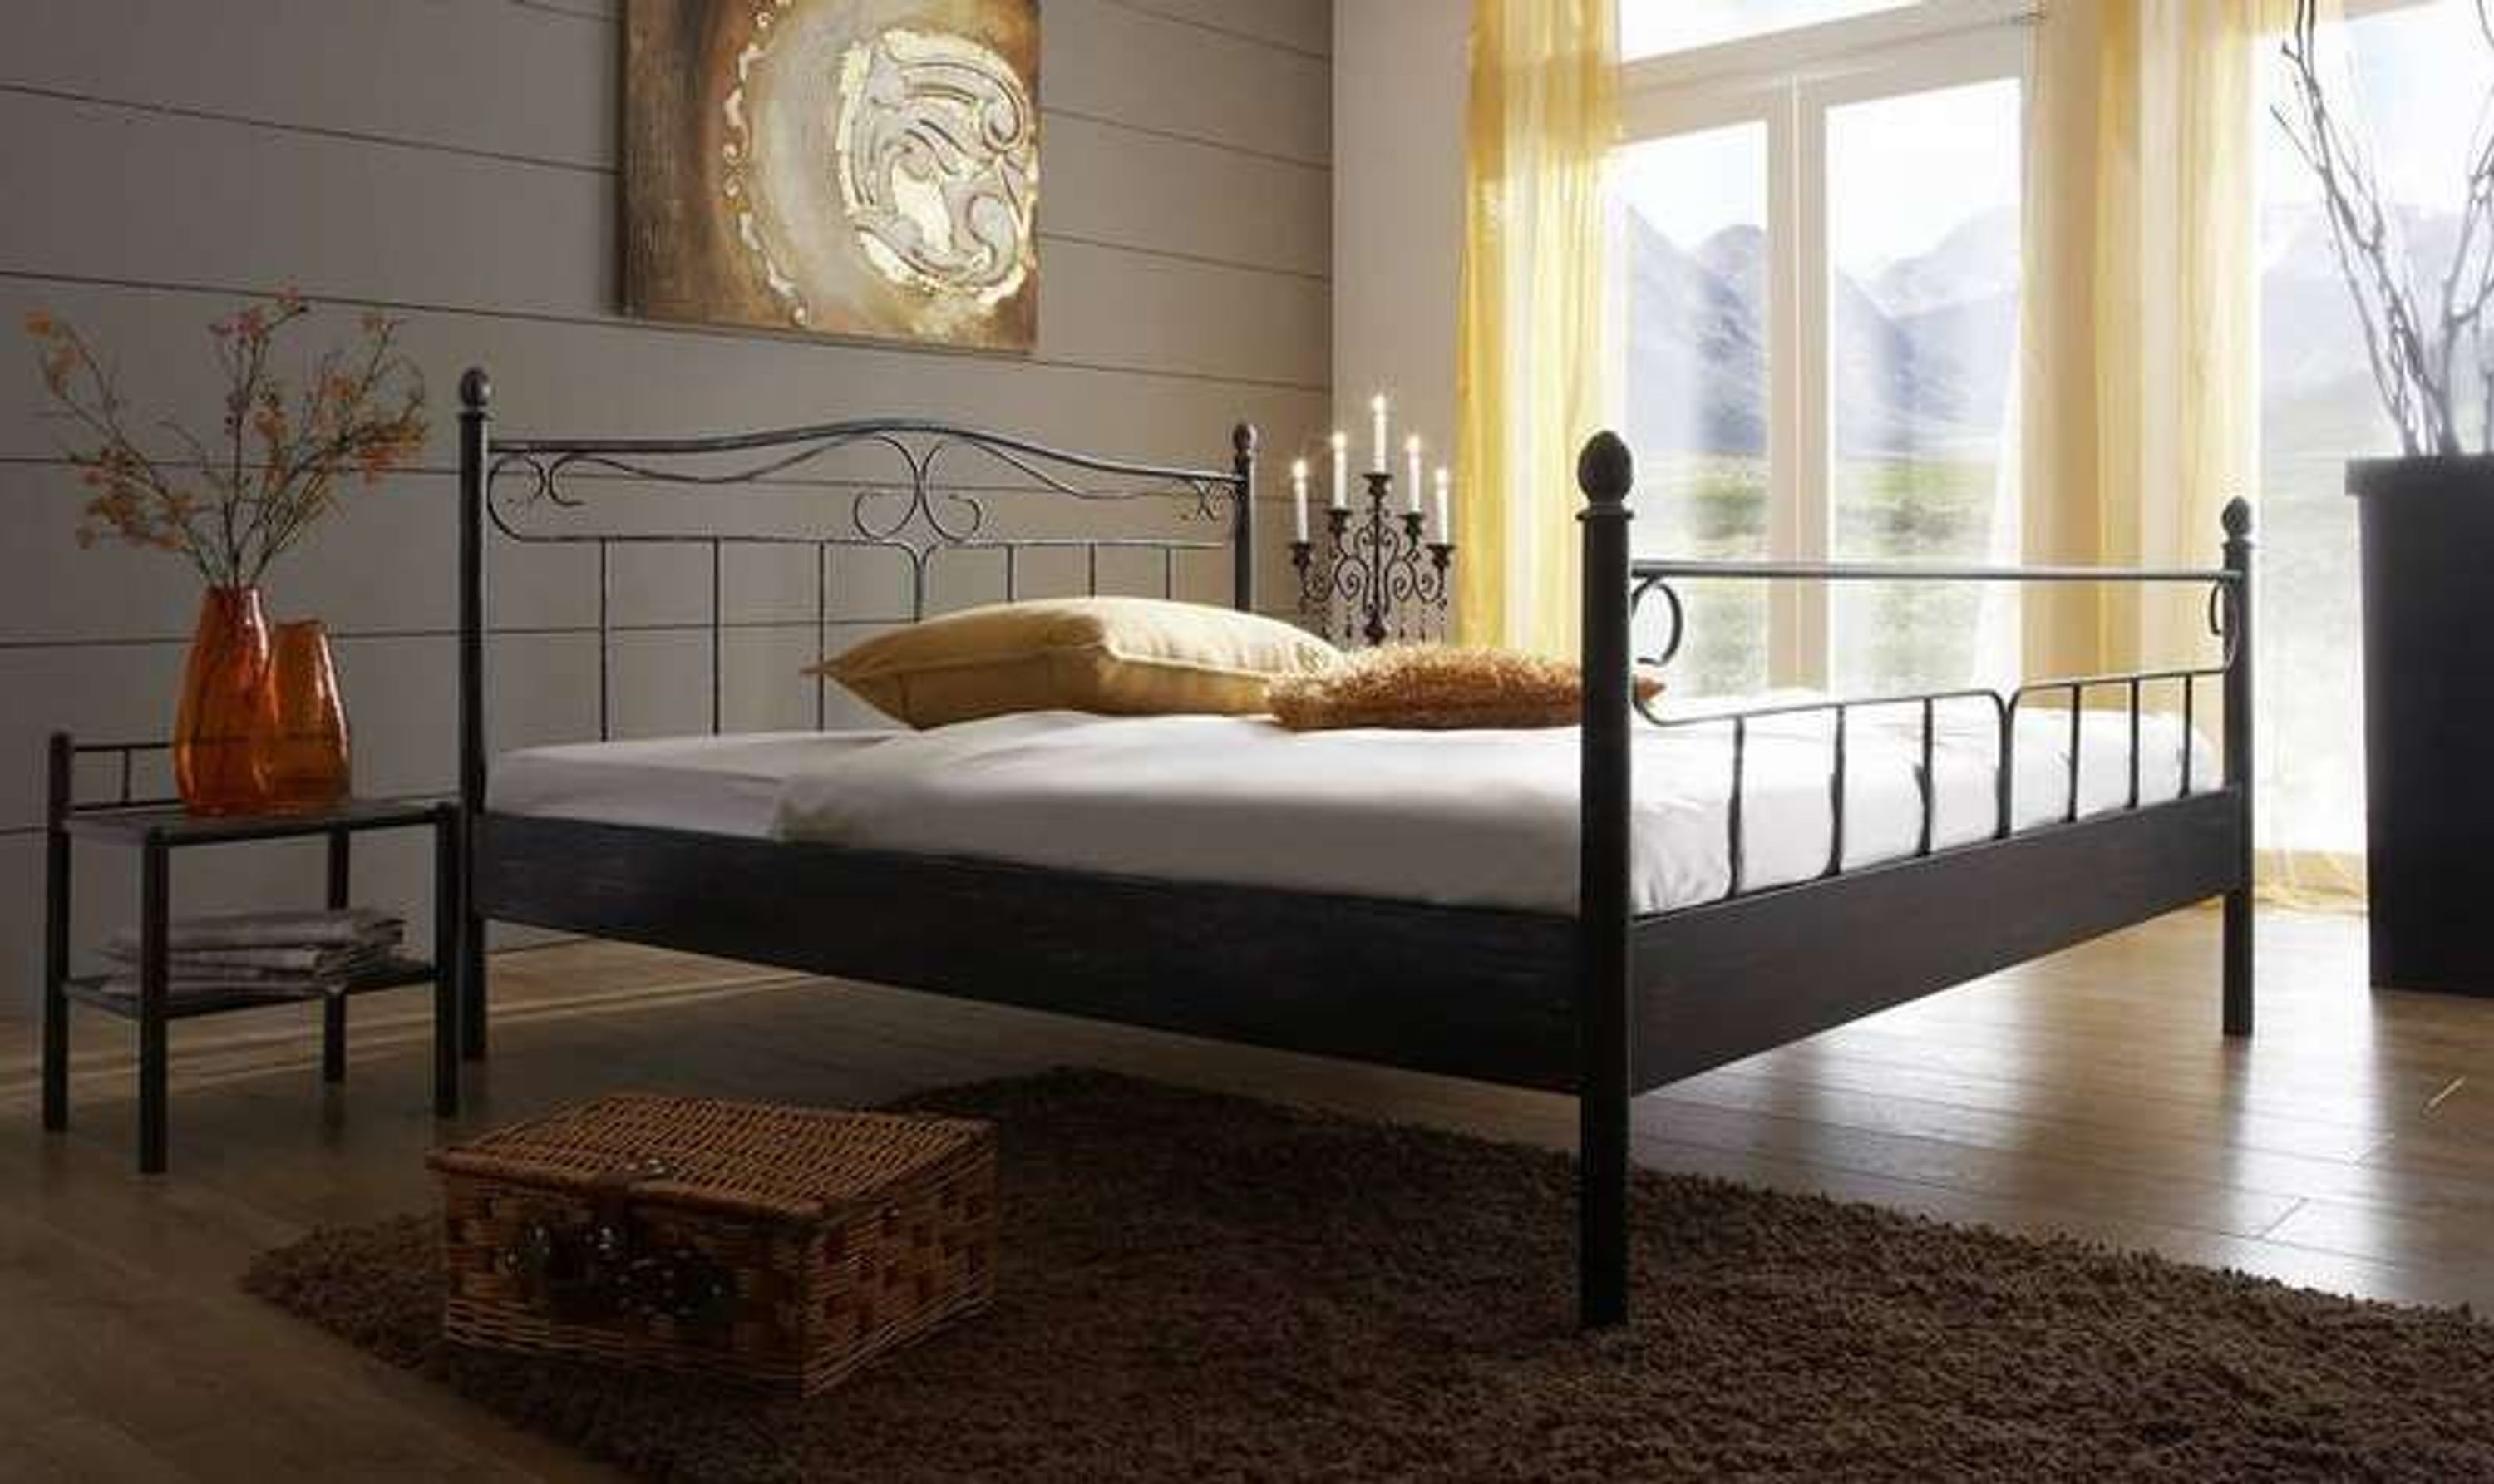 metall bett doppelbett zypern 140x200 kaufen bei. Black Bedroom Furniture Sets. Home Design Ideas